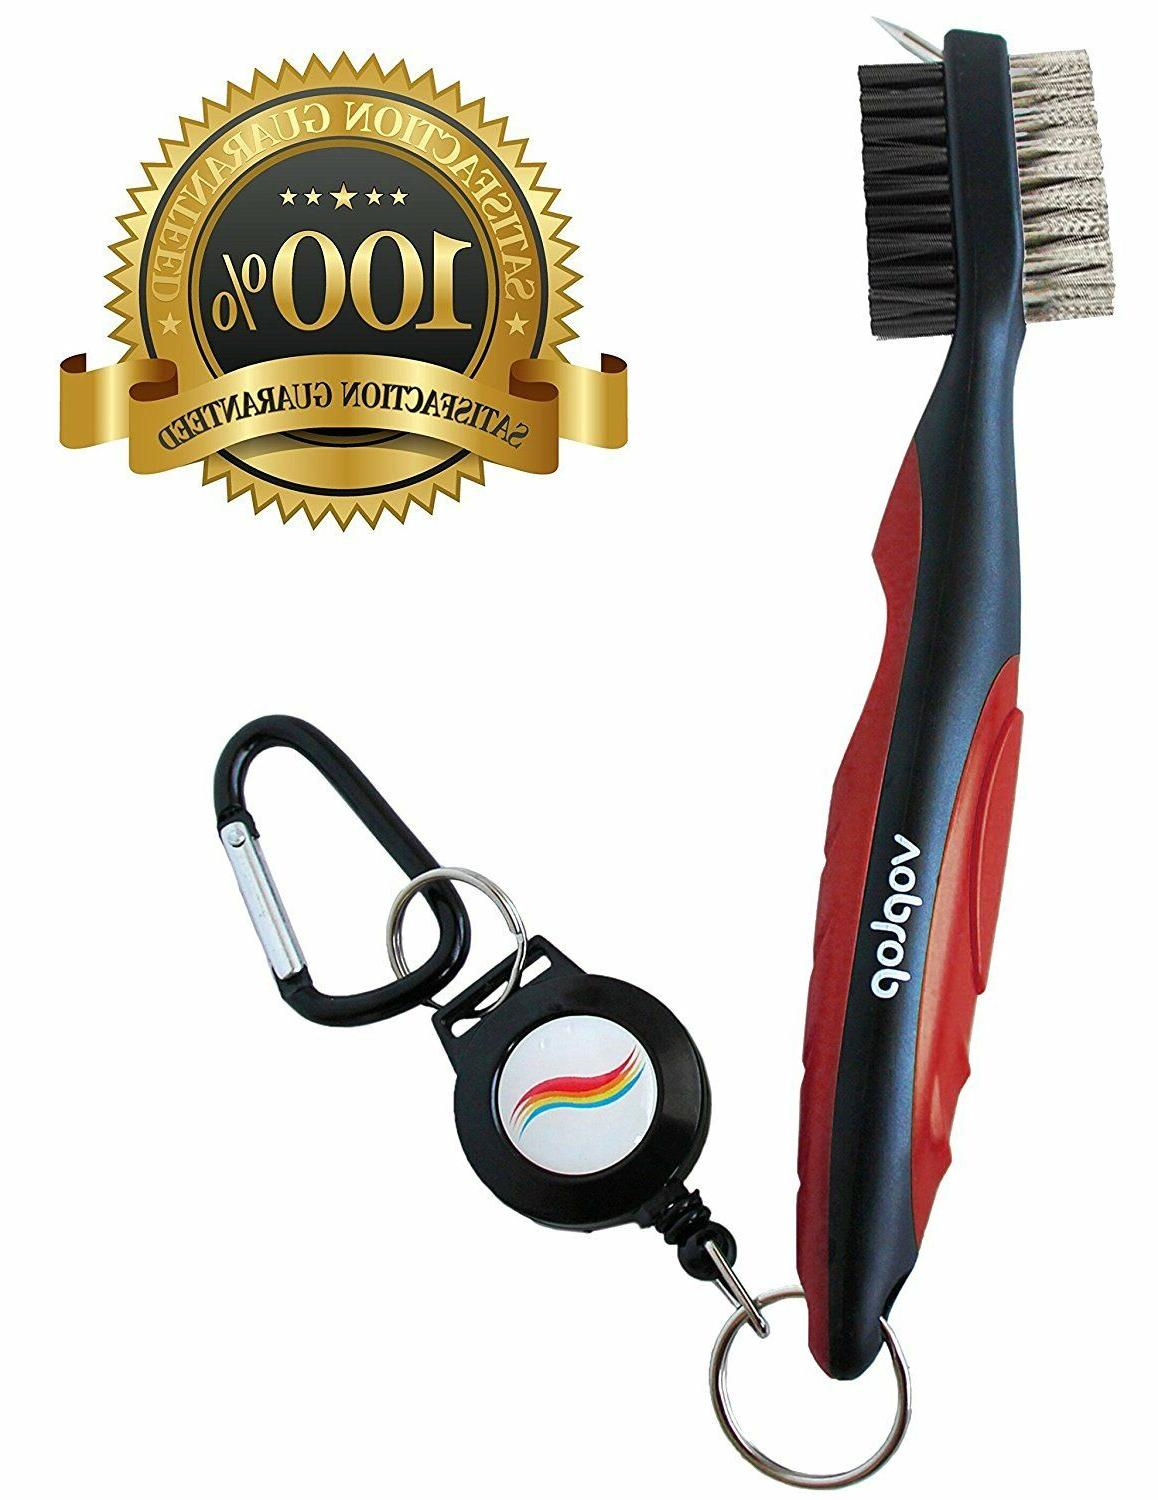 Voplop Golf Brush and Club Groove Cleaner - Easily Attaches